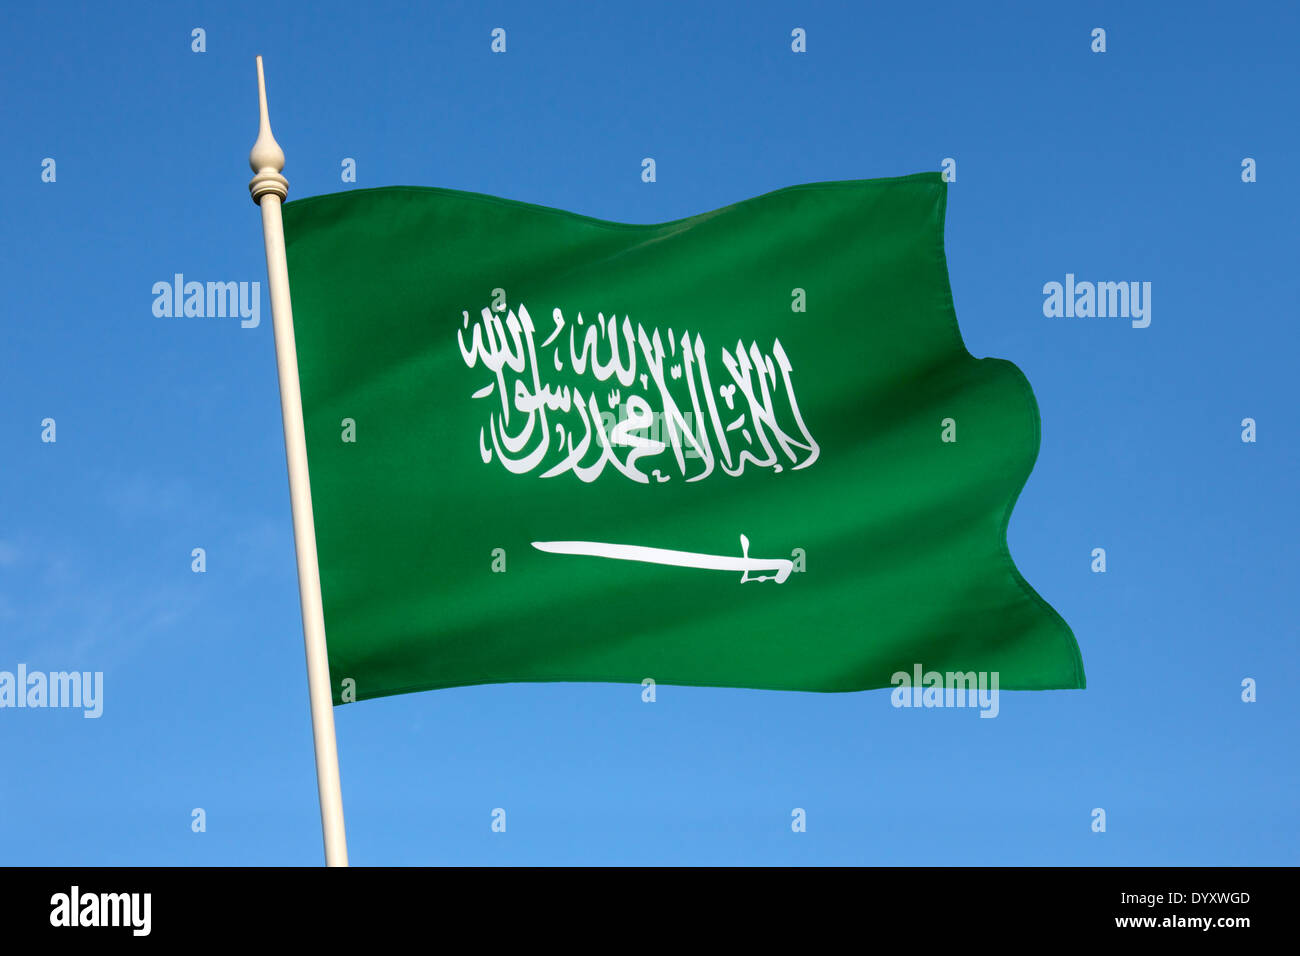 Le drapeau de l'Arabie Saoudite Photo Stock